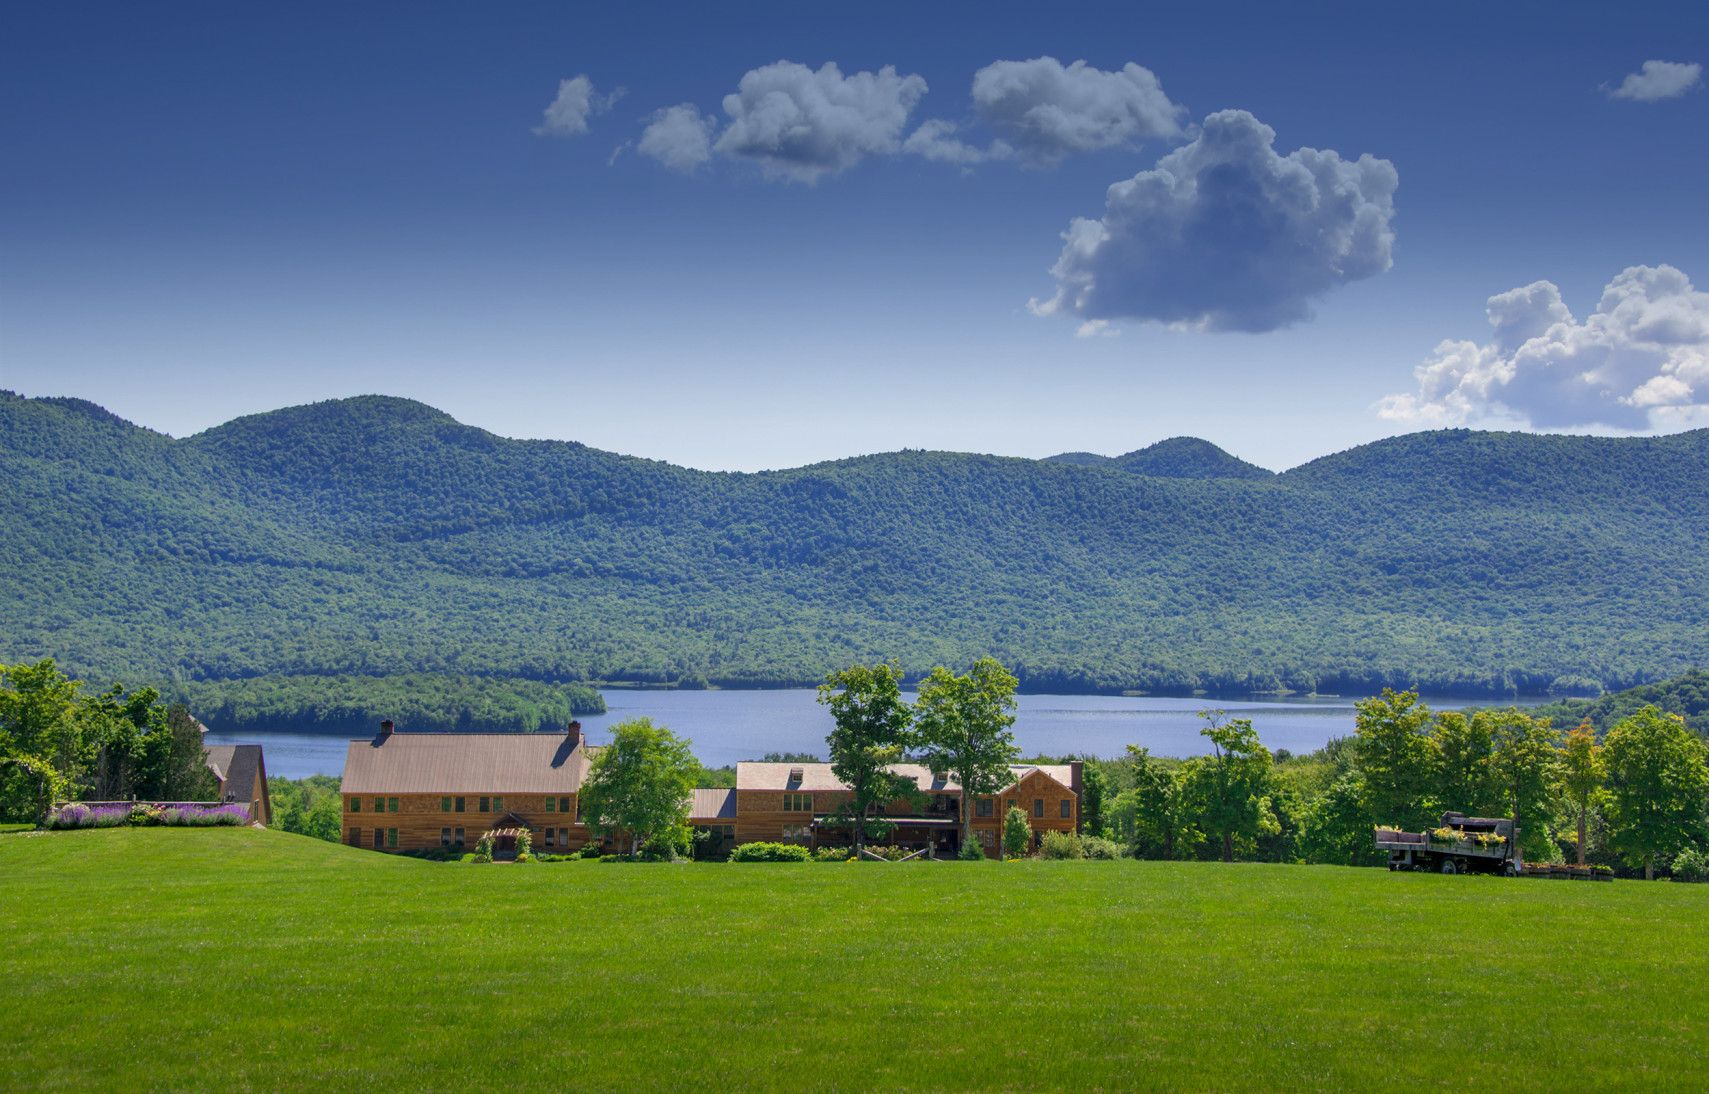 mountain top inn & resort is a 4-season vermont resort perfect for a